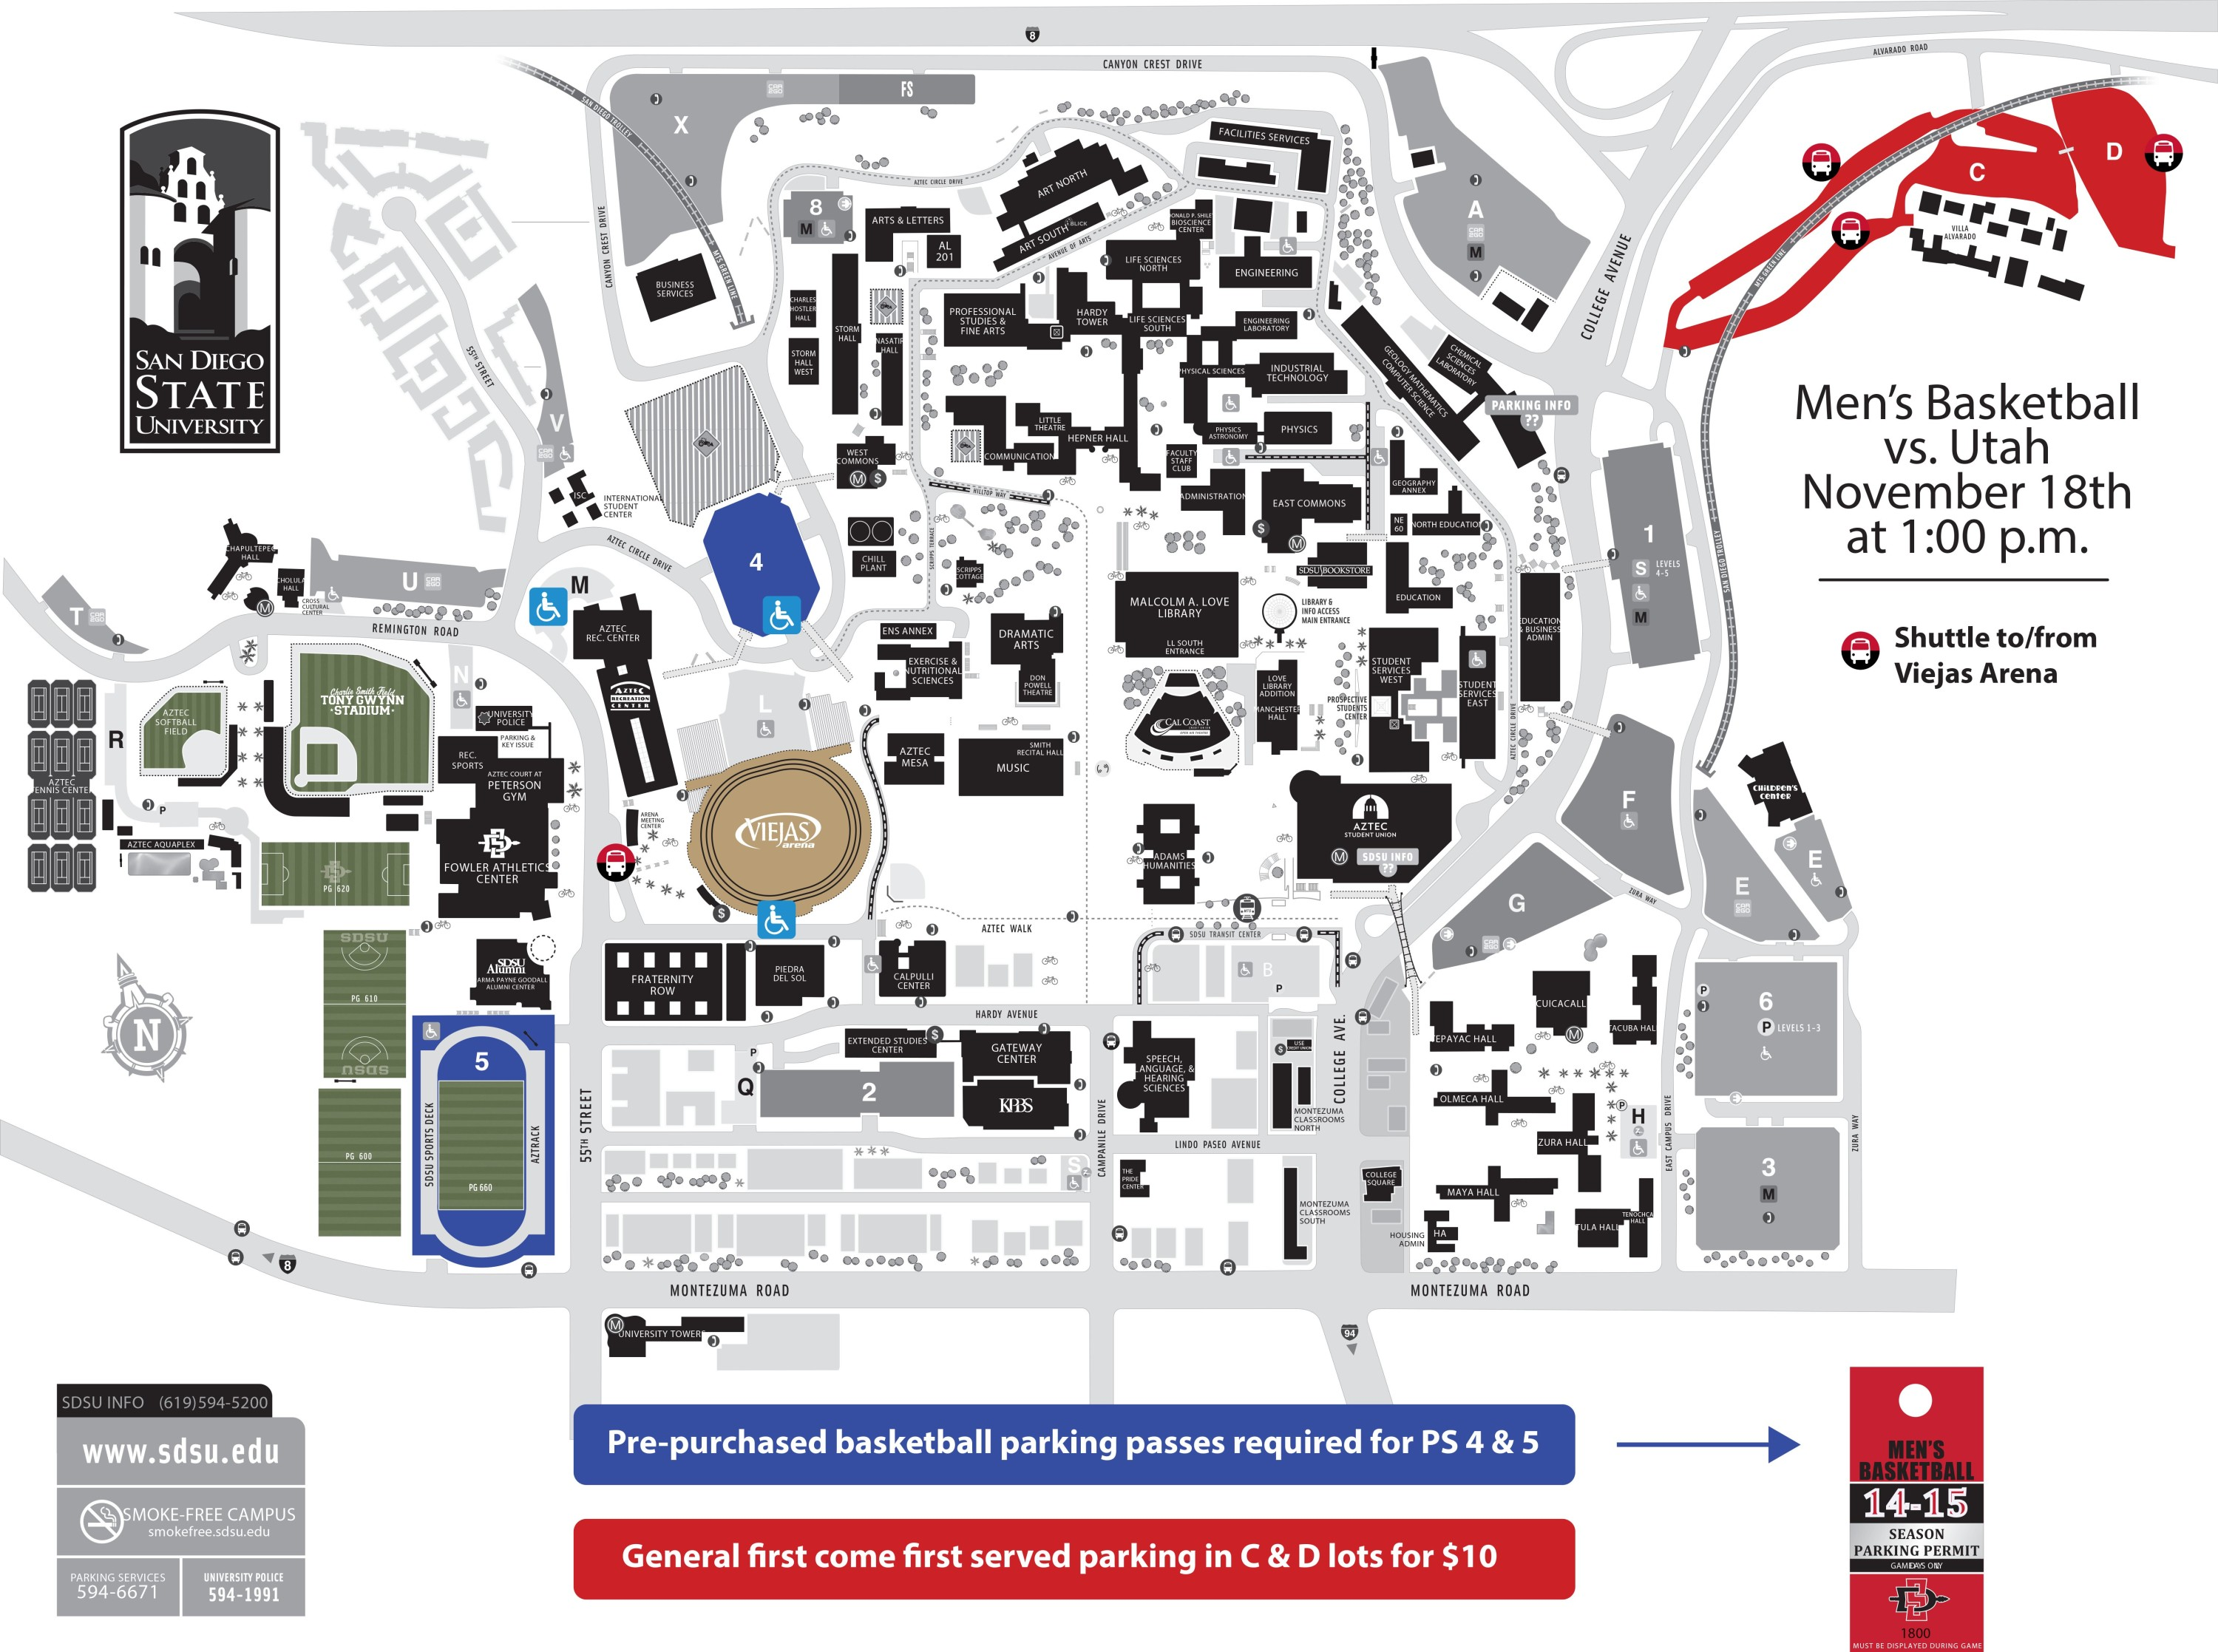 AztecMBB-Utah Parking Information - SDSU Athletics on txst map, mesa college map, csu san marcos map, ssu map, north park map, claremont map, wright state university campus map, san francisco state university campus map, west chester university campus map, uc riverside map, northwestern map, long beach city college map, north dakota state university campus map, sjsu map, san diego map, usfca map, wcu map, usd map, ndsu map, texas a&m map,